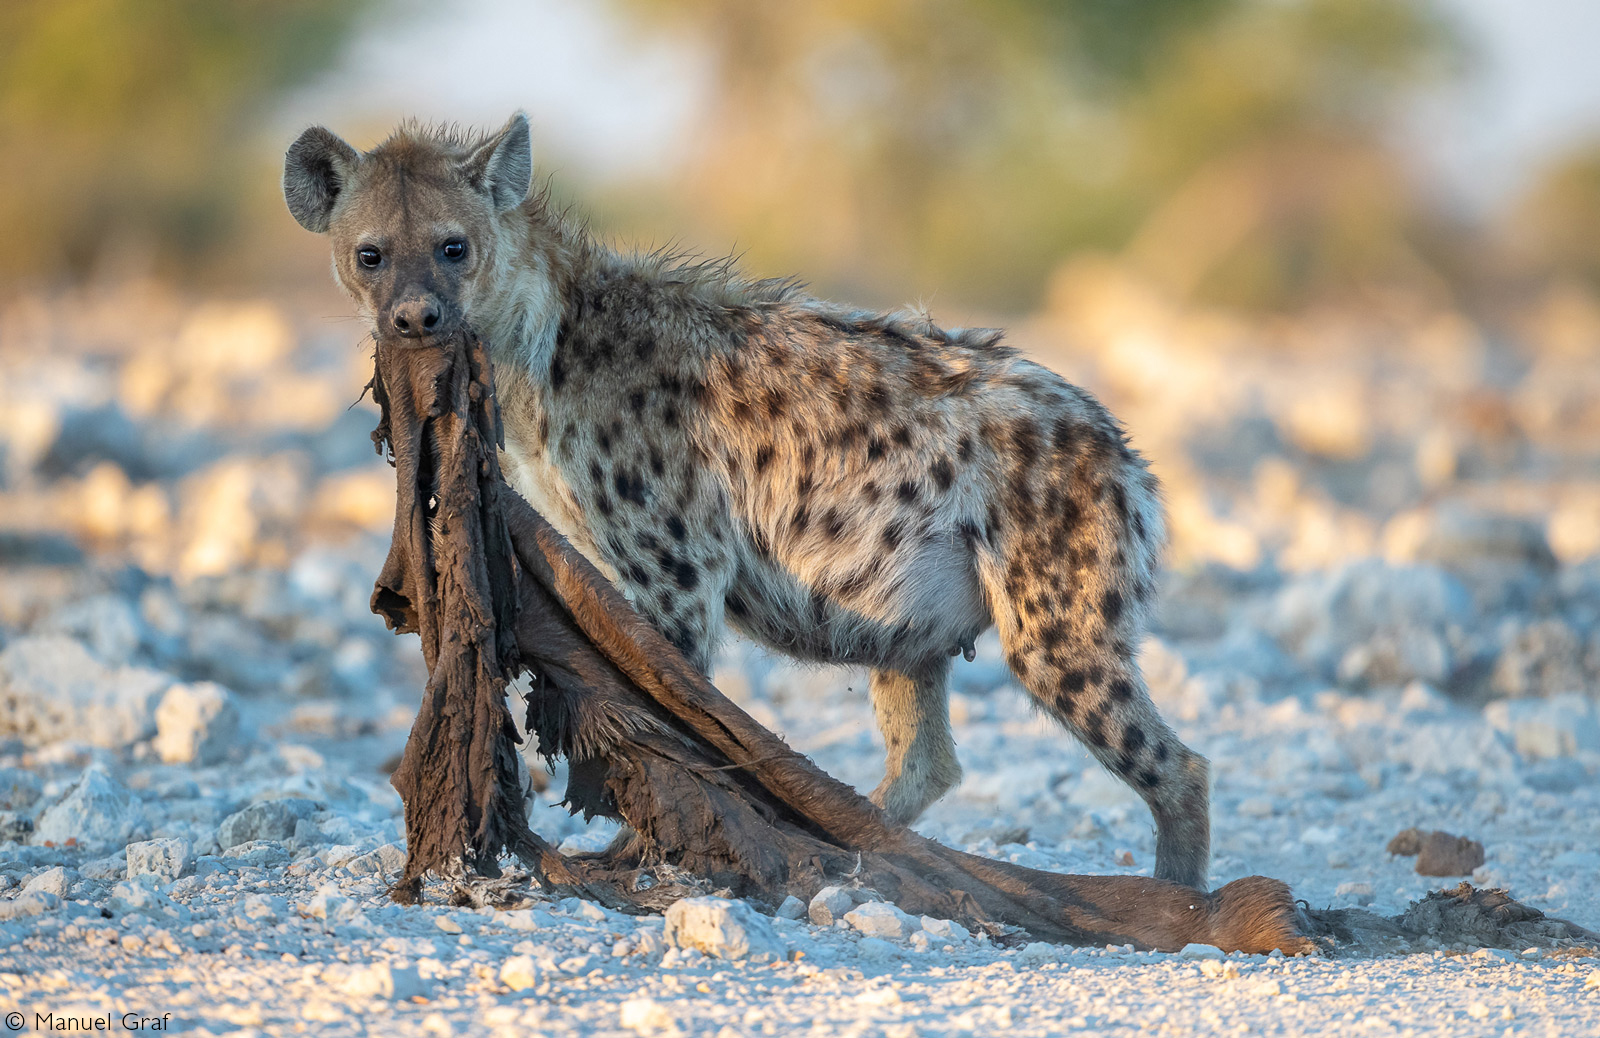 A spotted hyena carries the remains of a kill. Etosha National Park, Namibia © Manuel Graf